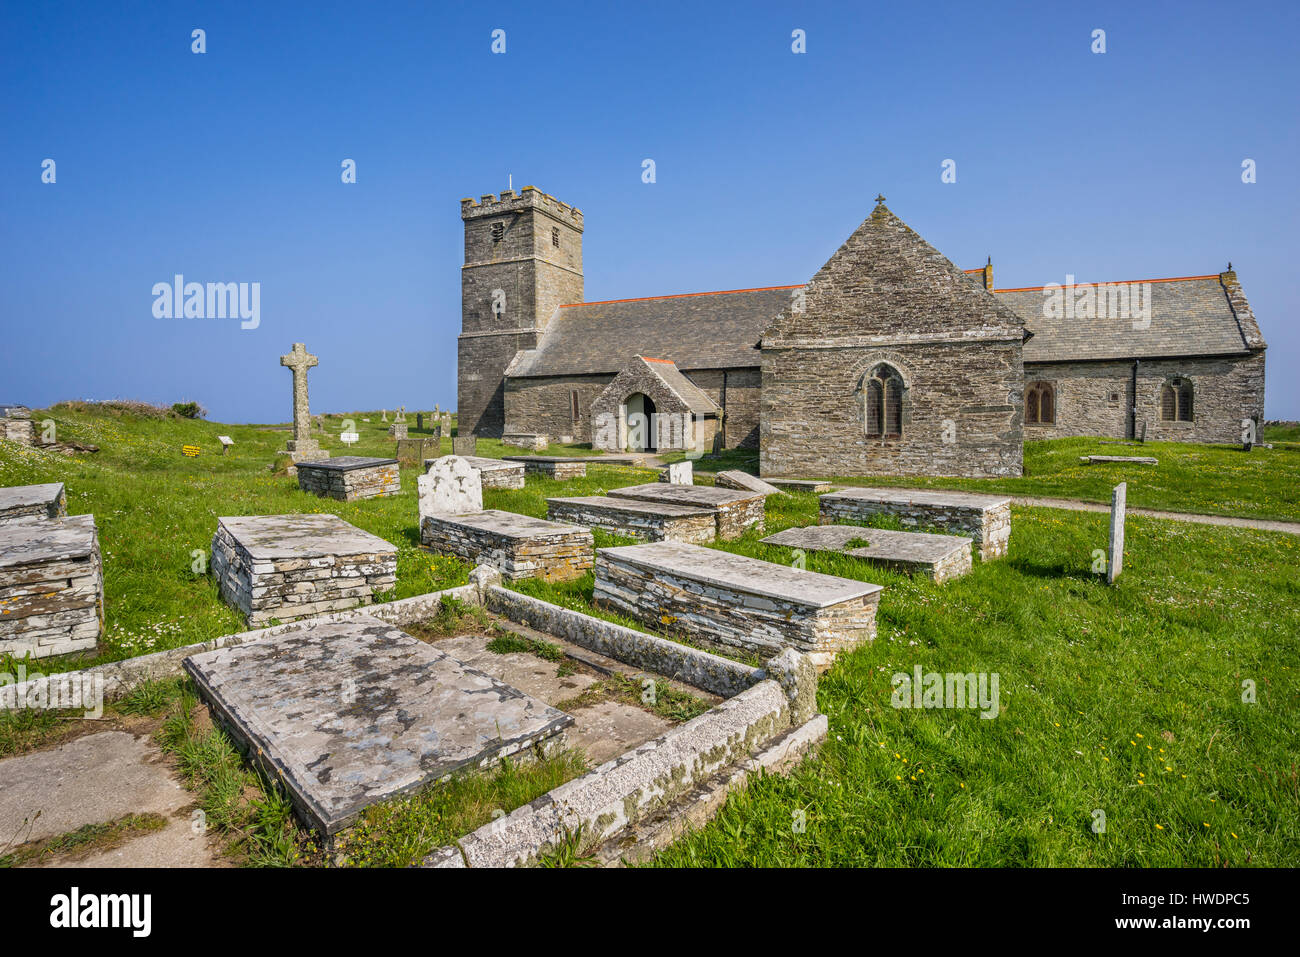 United Kingdom, South West England, Cornwall, Tintagel, view of the Parish Church of Saint Materiana with Churchyard - Stock Image